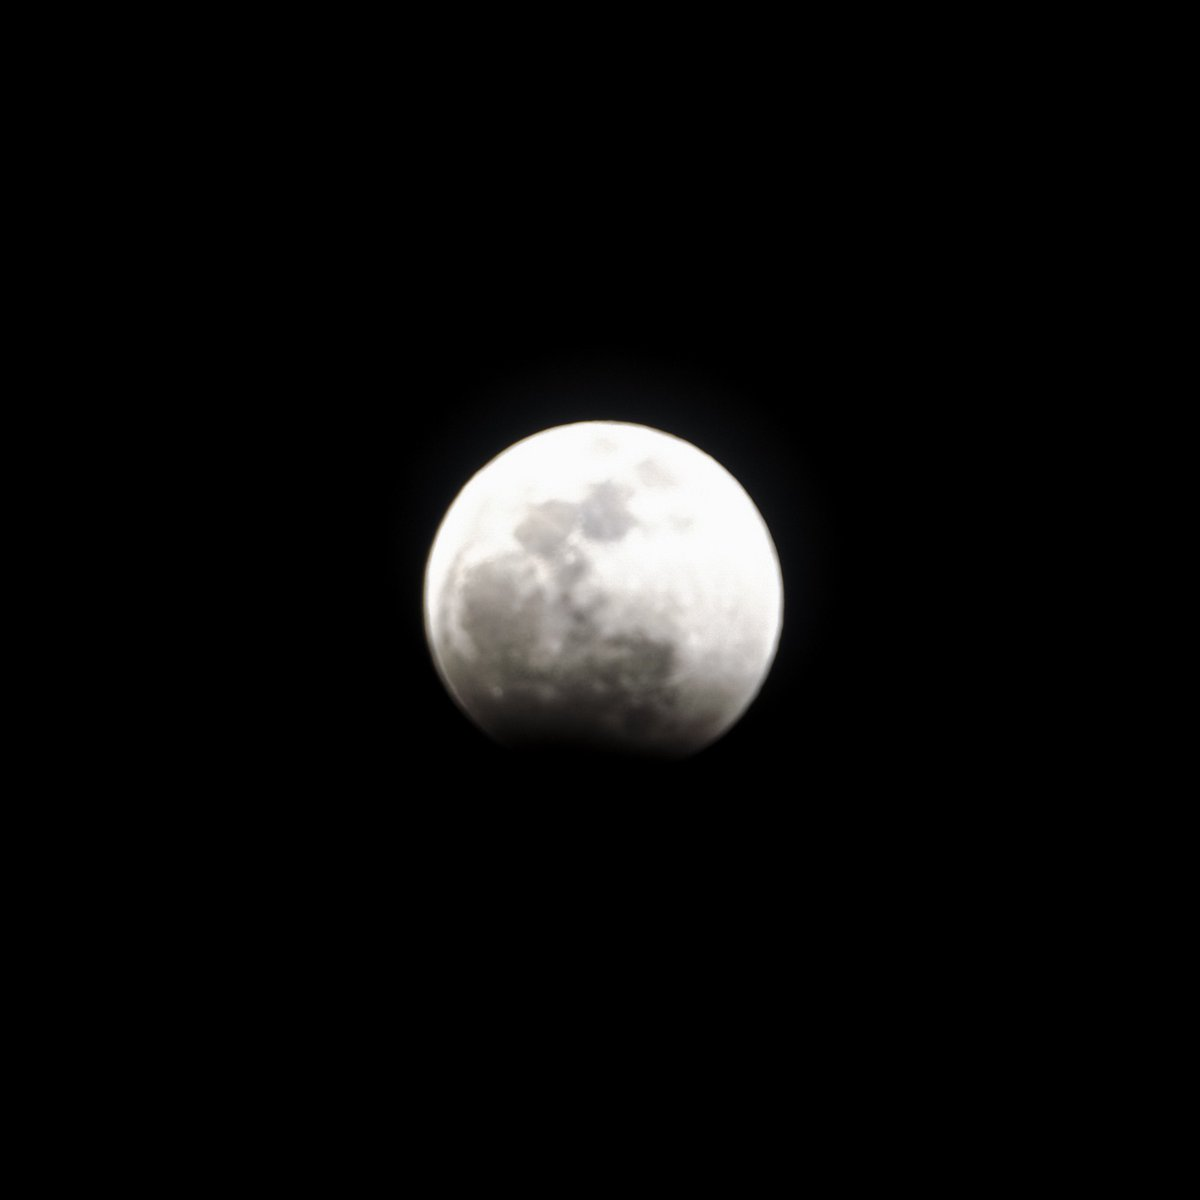 Part of the Moon is missing so get outside if the weather is good and enjoy it #LunarEclipse